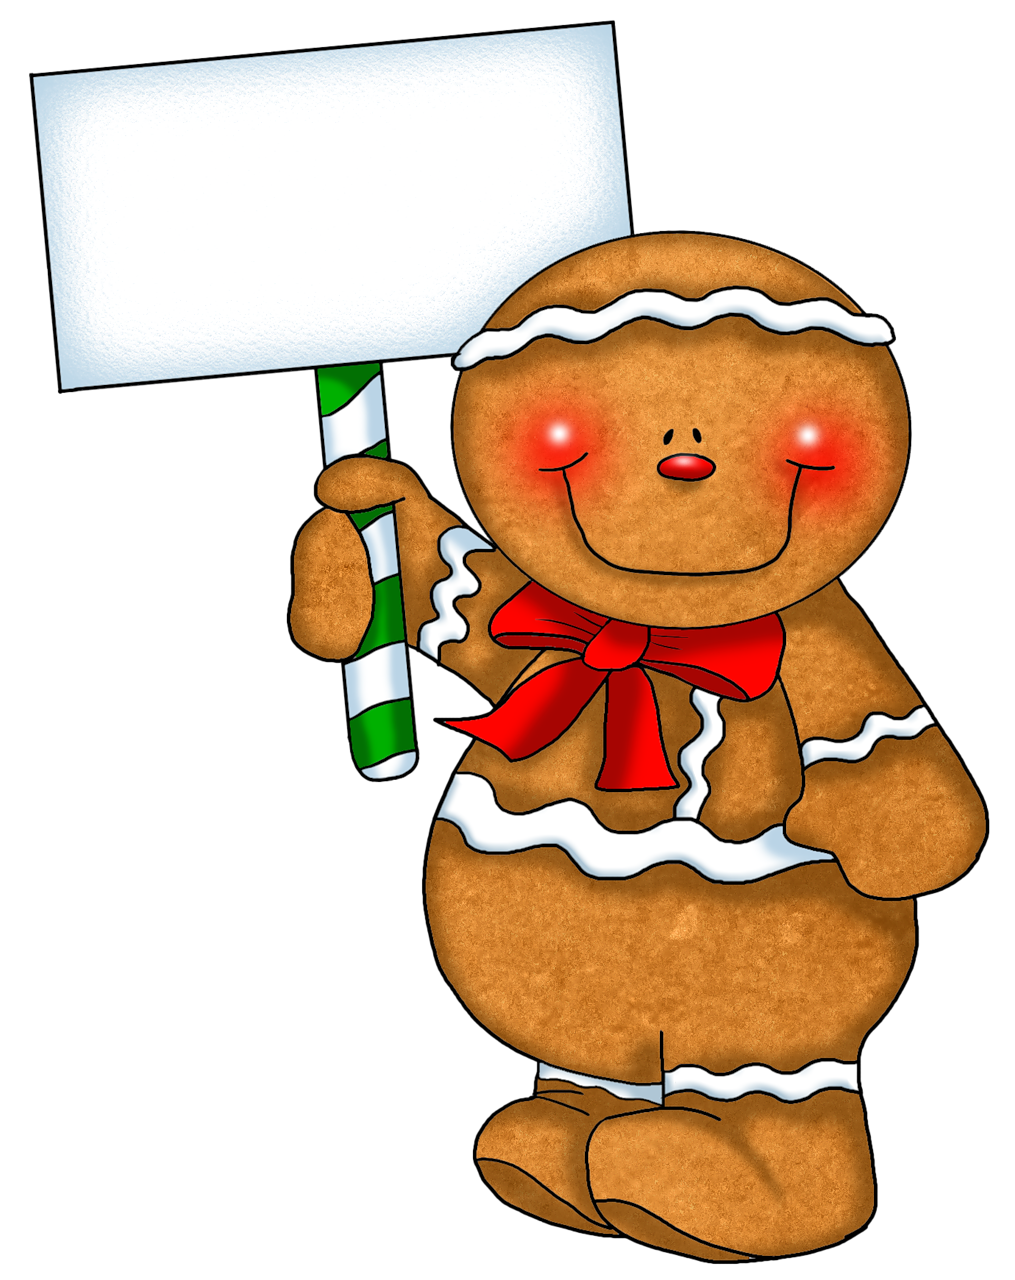 Gingerbread clipart frame. Transparent ornament with empty